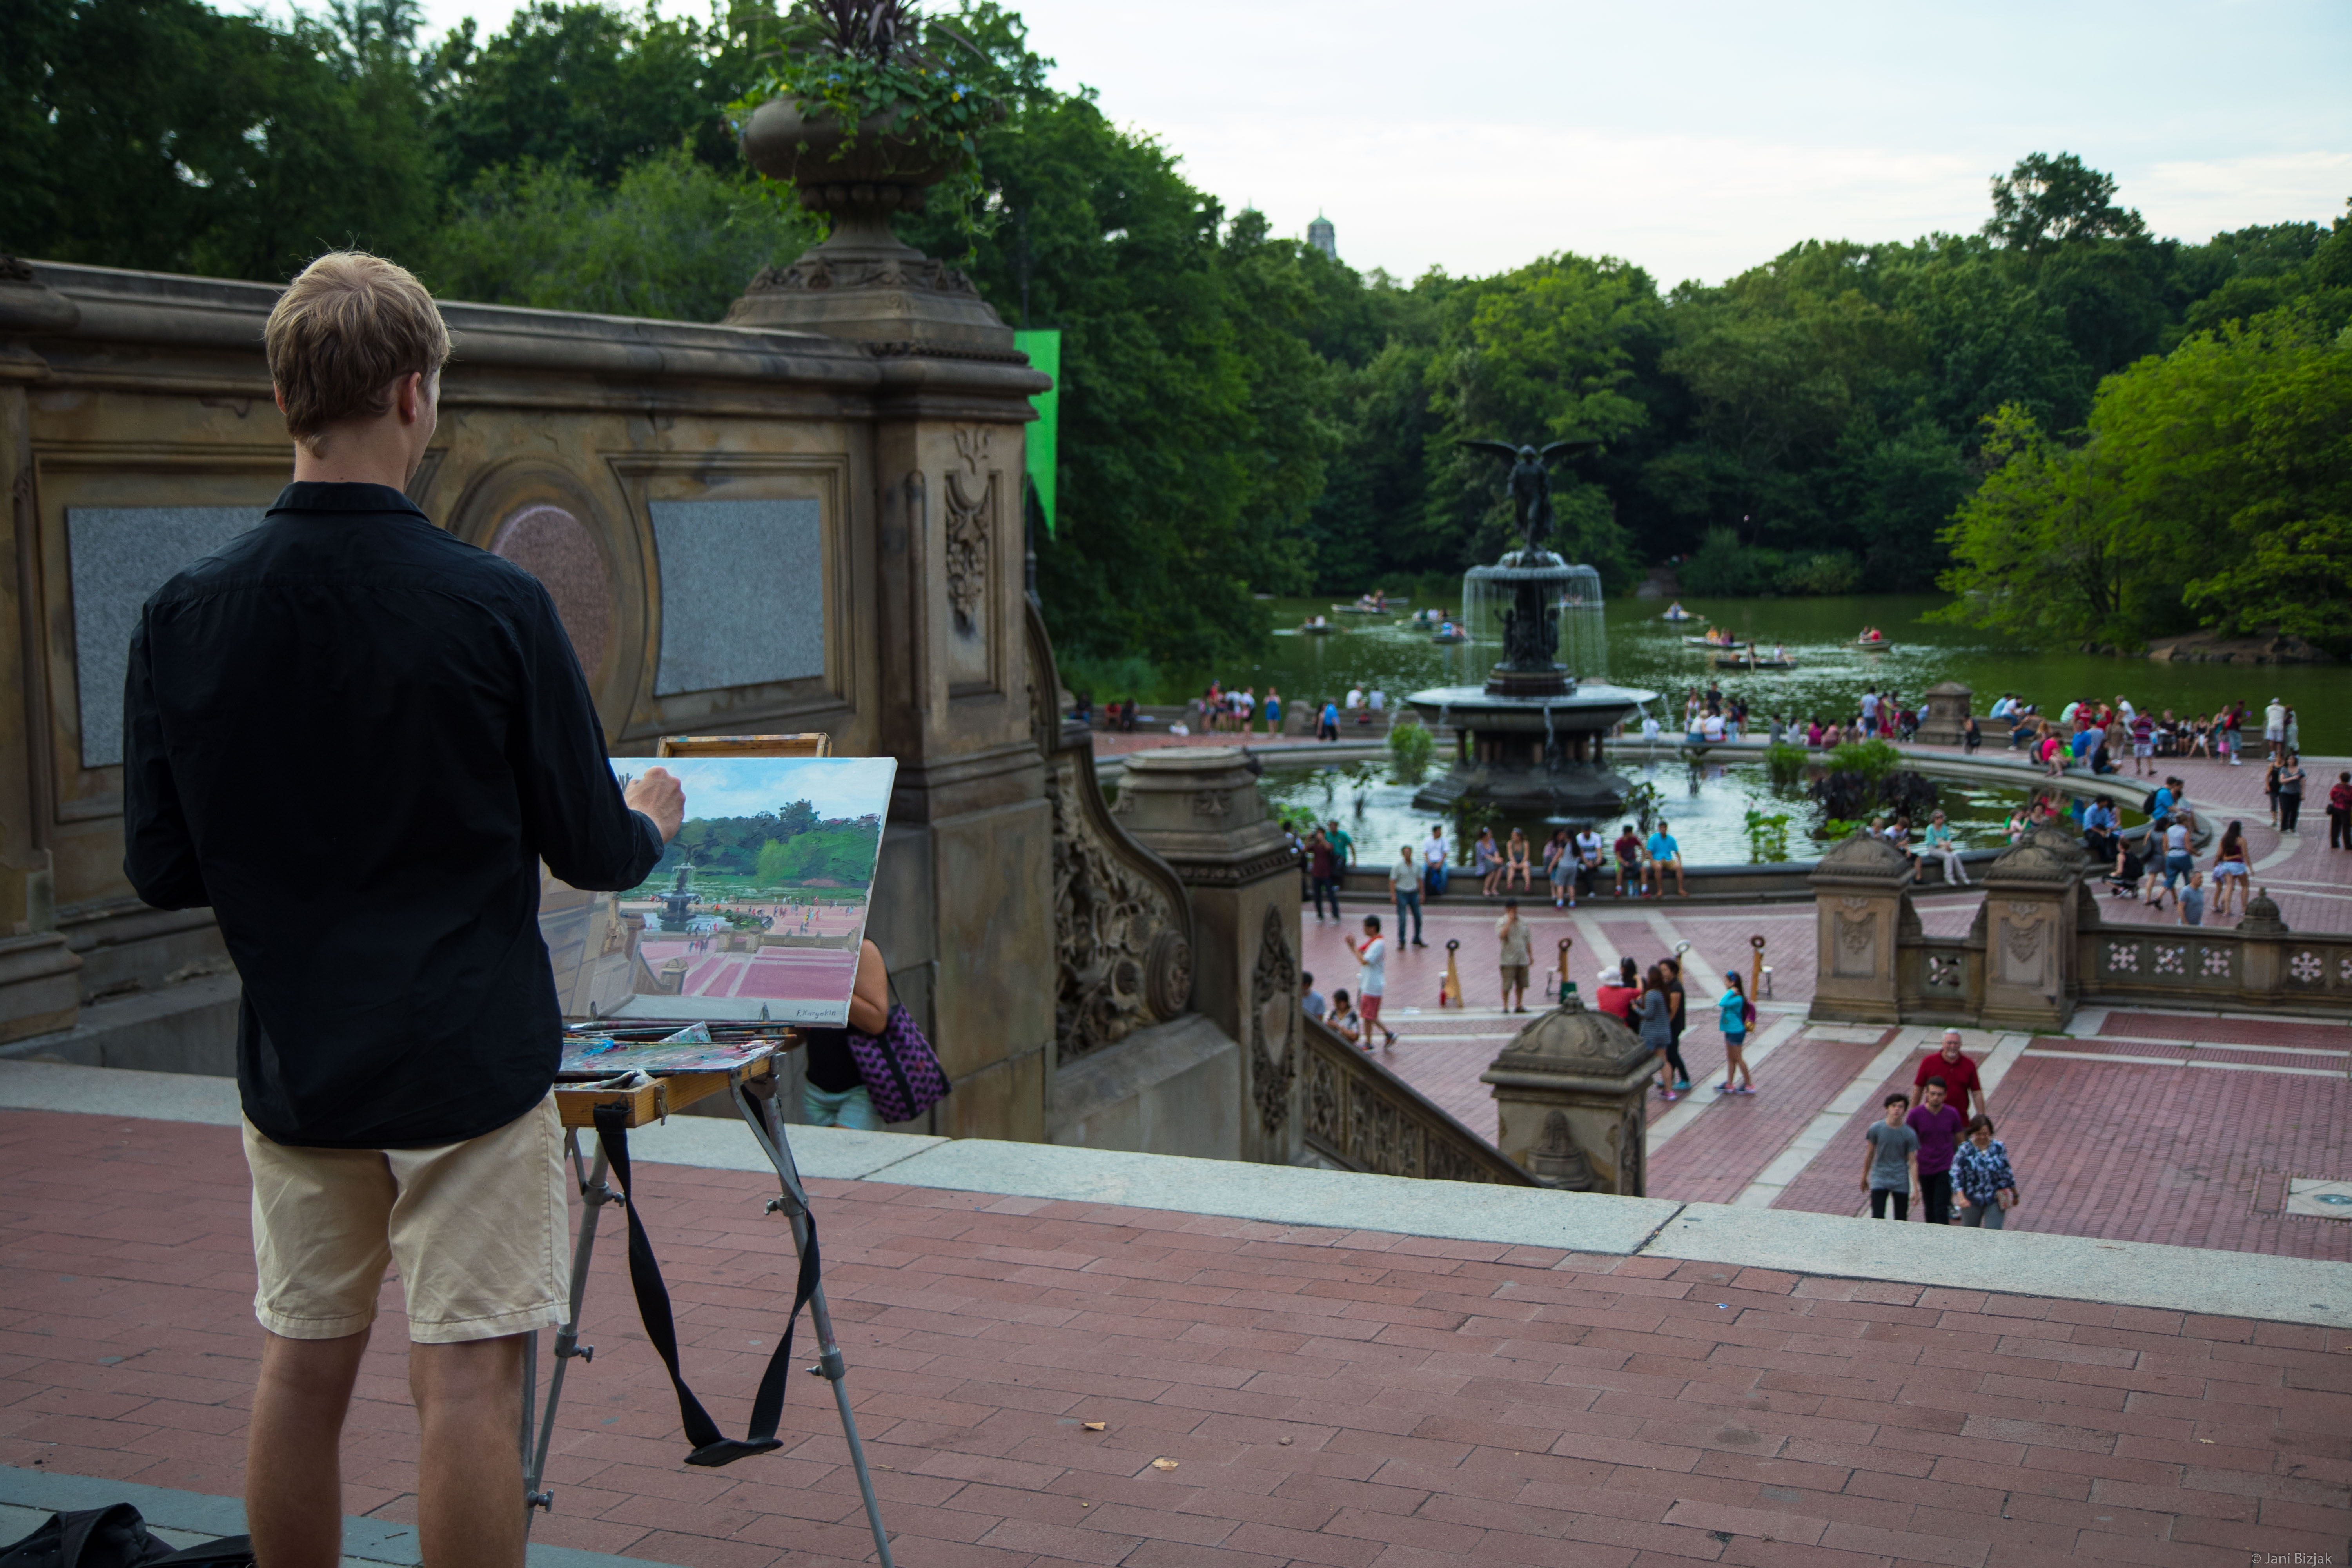 Painting in central park.